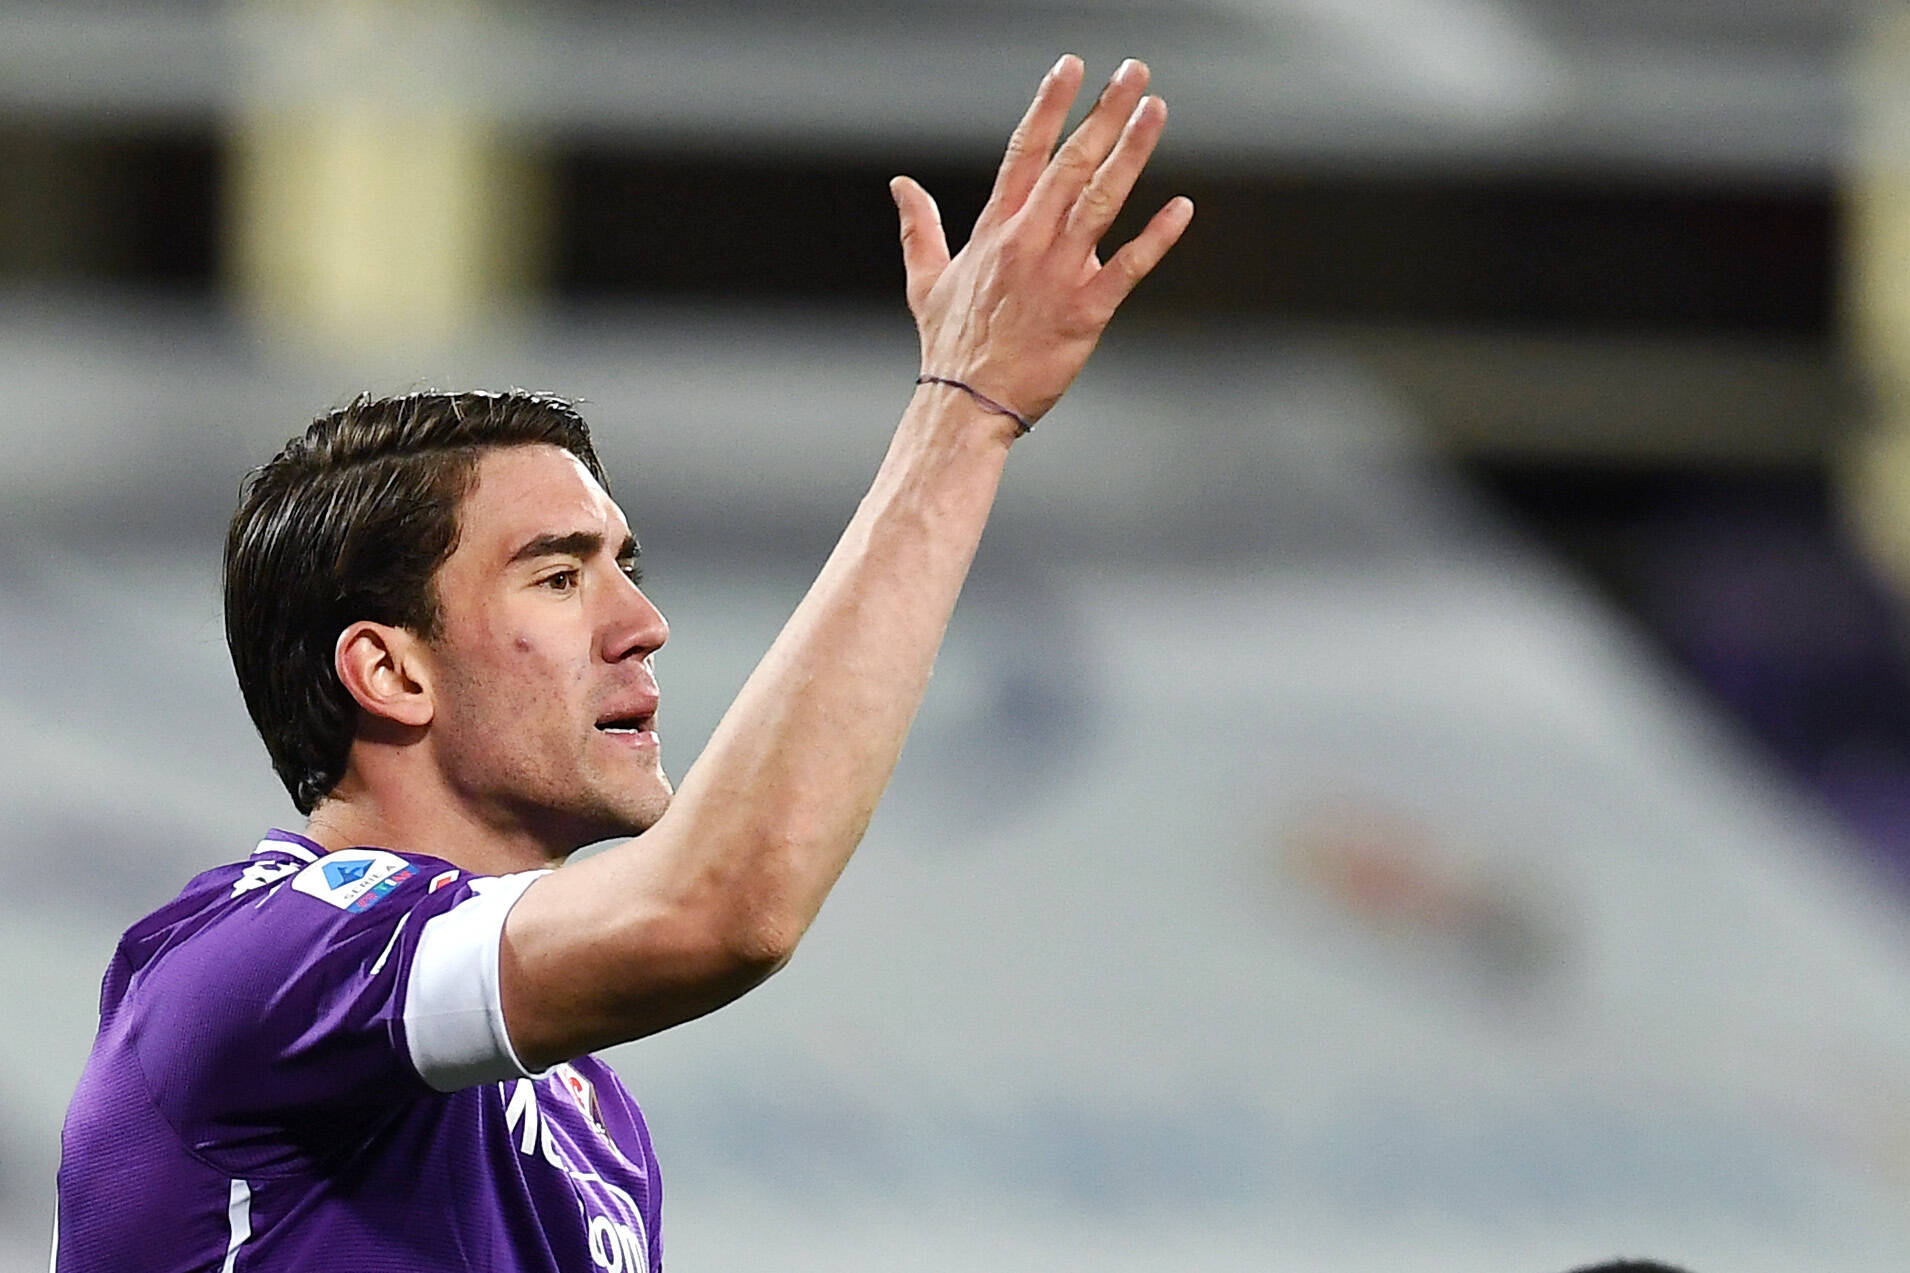 Tottenham Hotspur eyeing a move for Vlahovic who is seen in the picture